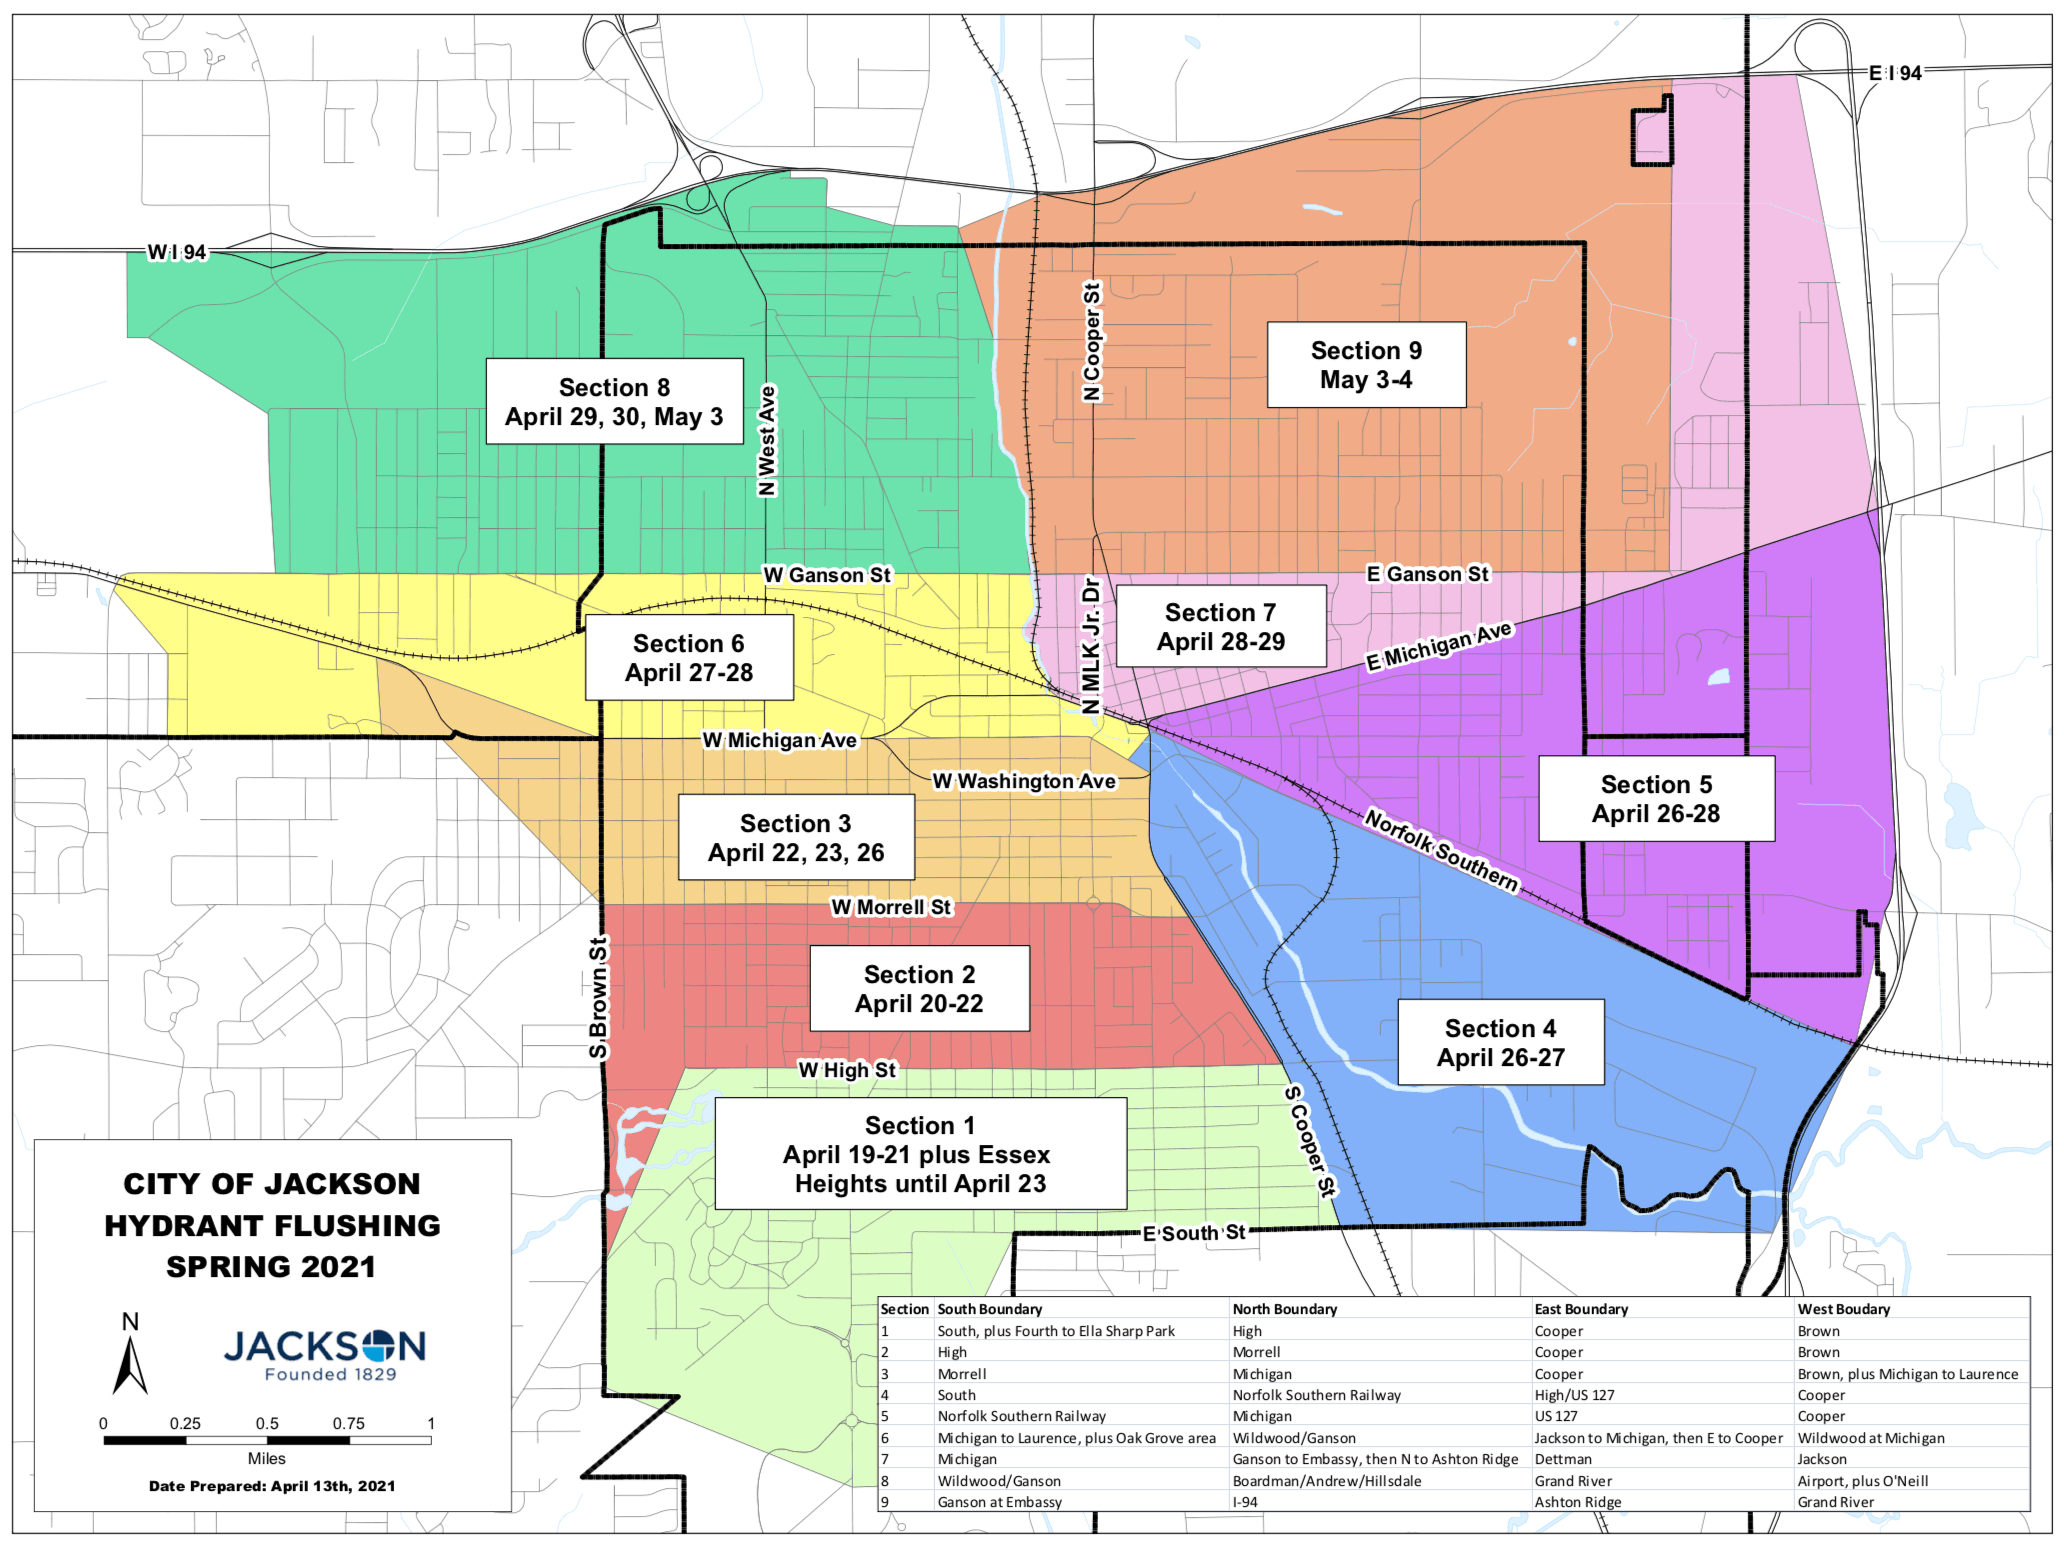 Jackson Hydrant Flushing Map